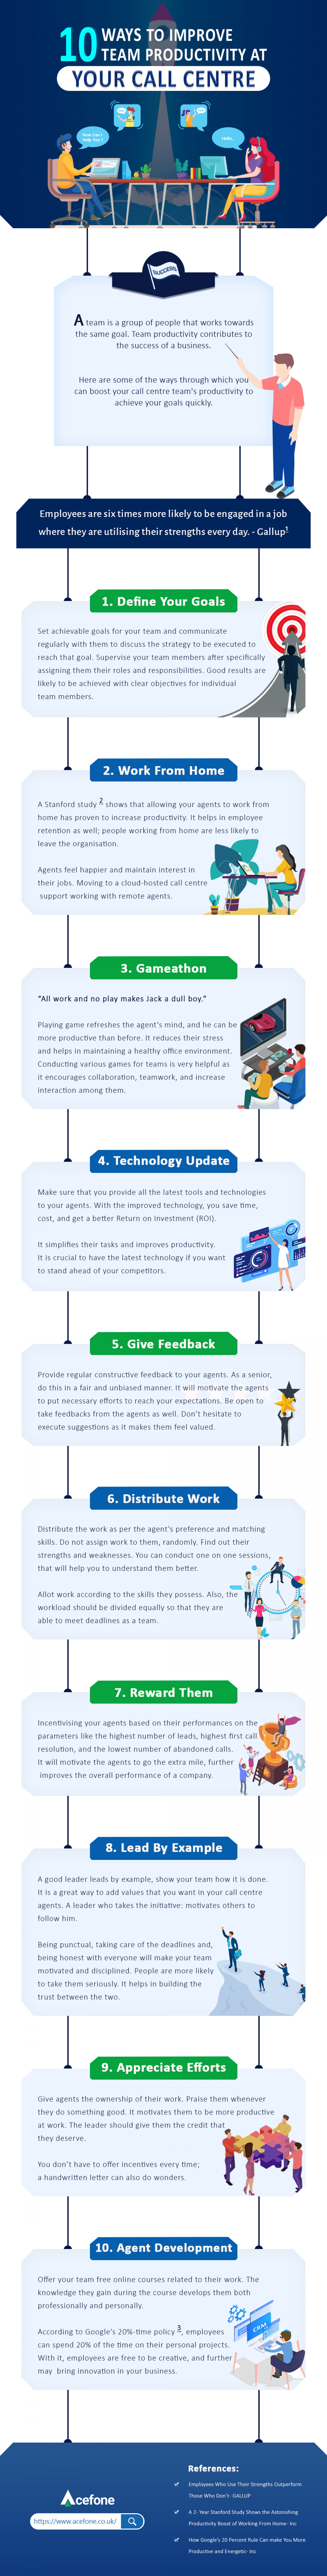 10 Ways To Improve Team Productivity At Your Call Centre Infographic